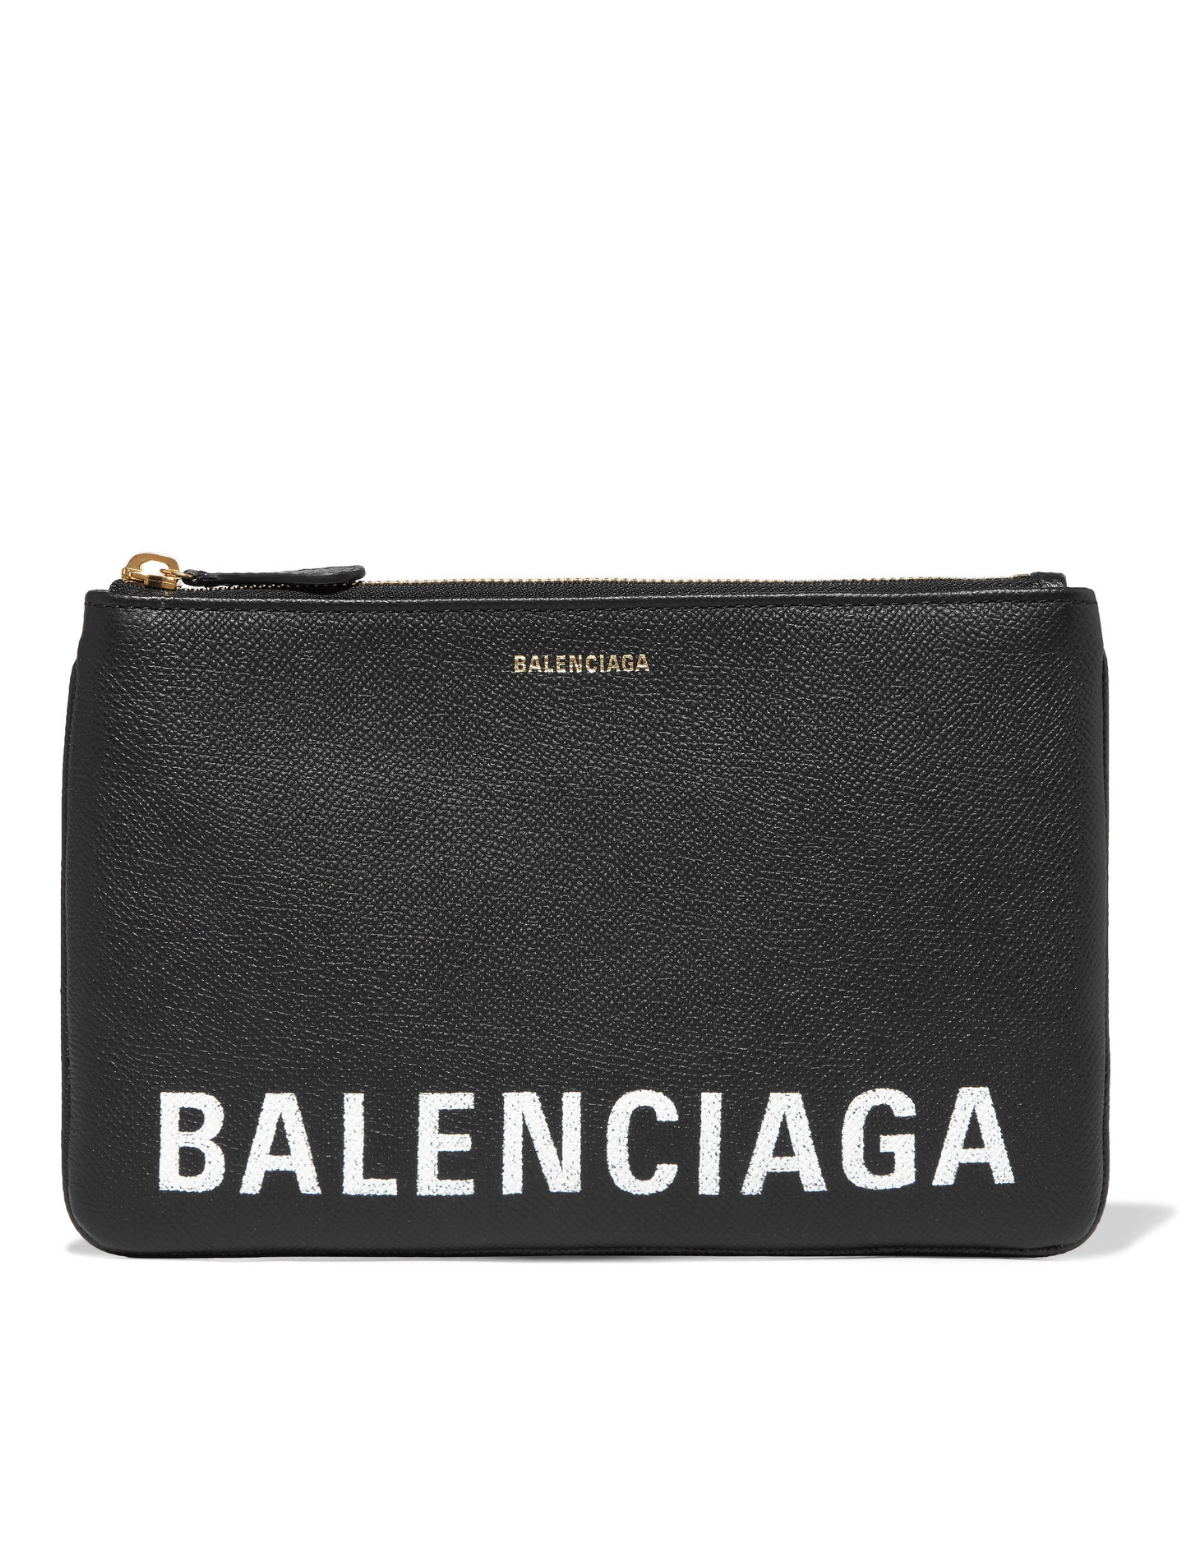 Balenciaga Ville Leather Pouch - 490€